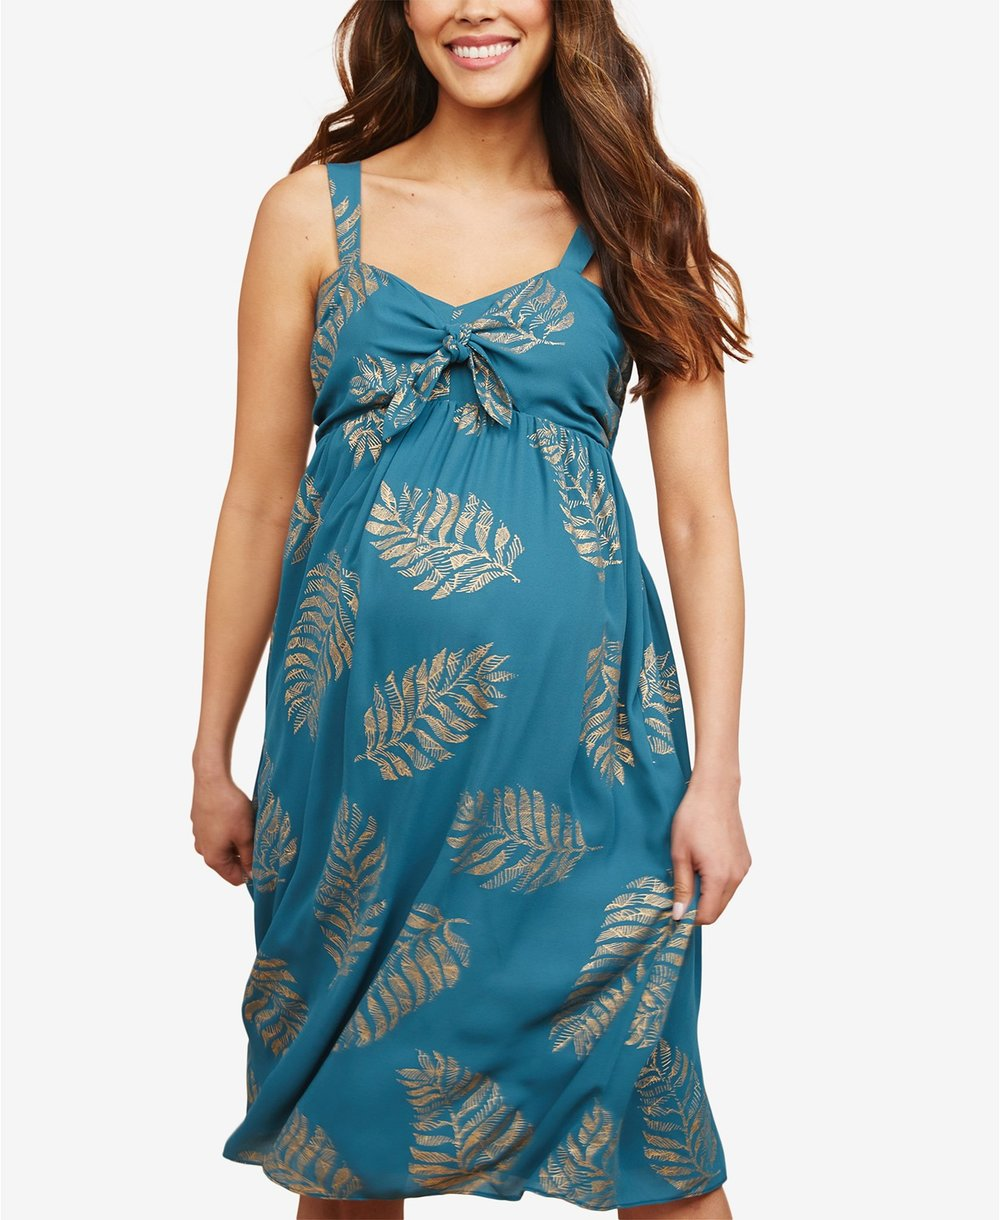 Plus Size Twist-Front Dress  $49.98 - Macy's  With a stylish silhouette, this plus-size twist-front dress by Motherhood Maternity is an essential for expecting moms.